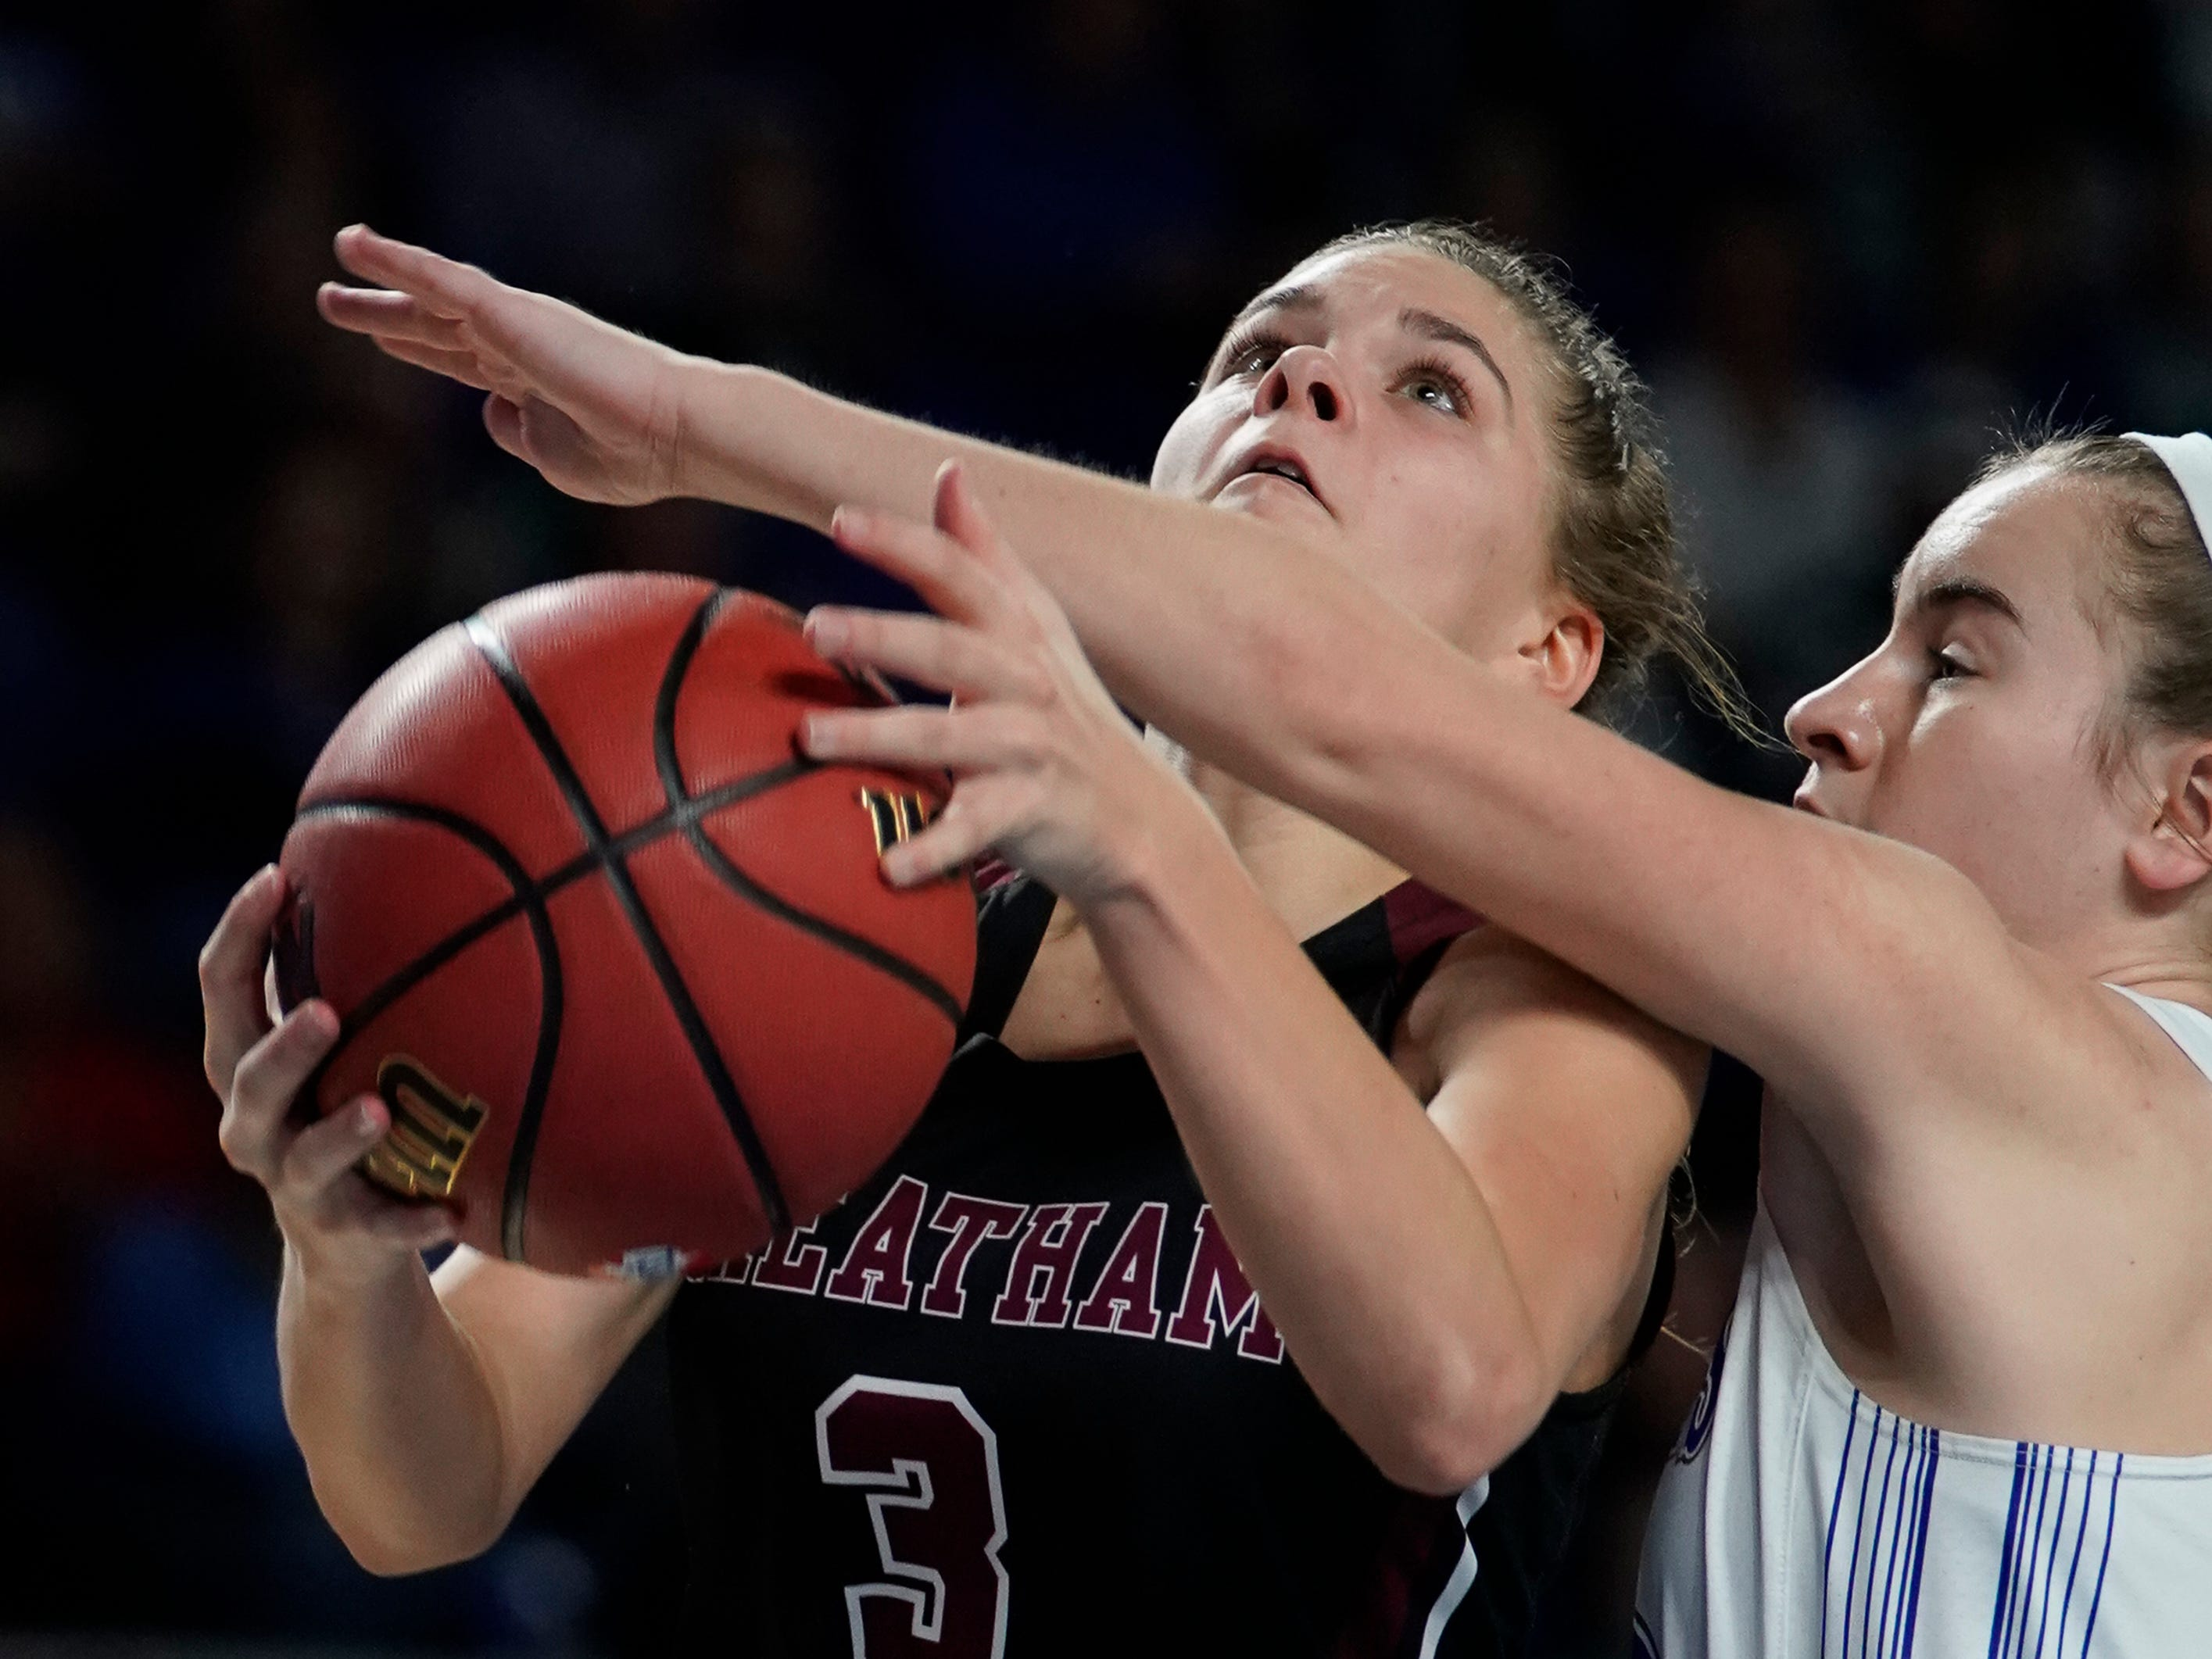 Cheatham Co. guard Emmy Nelson (3) is fouled by Macon Co. guard forward McKaylee Mix (42) during the second half of their semifinal game in the Division I Class AA Girls TSSAA Girls State Championships at Murphy Center Friday, March 8, 2019 in Murfreesboro, Tenn.